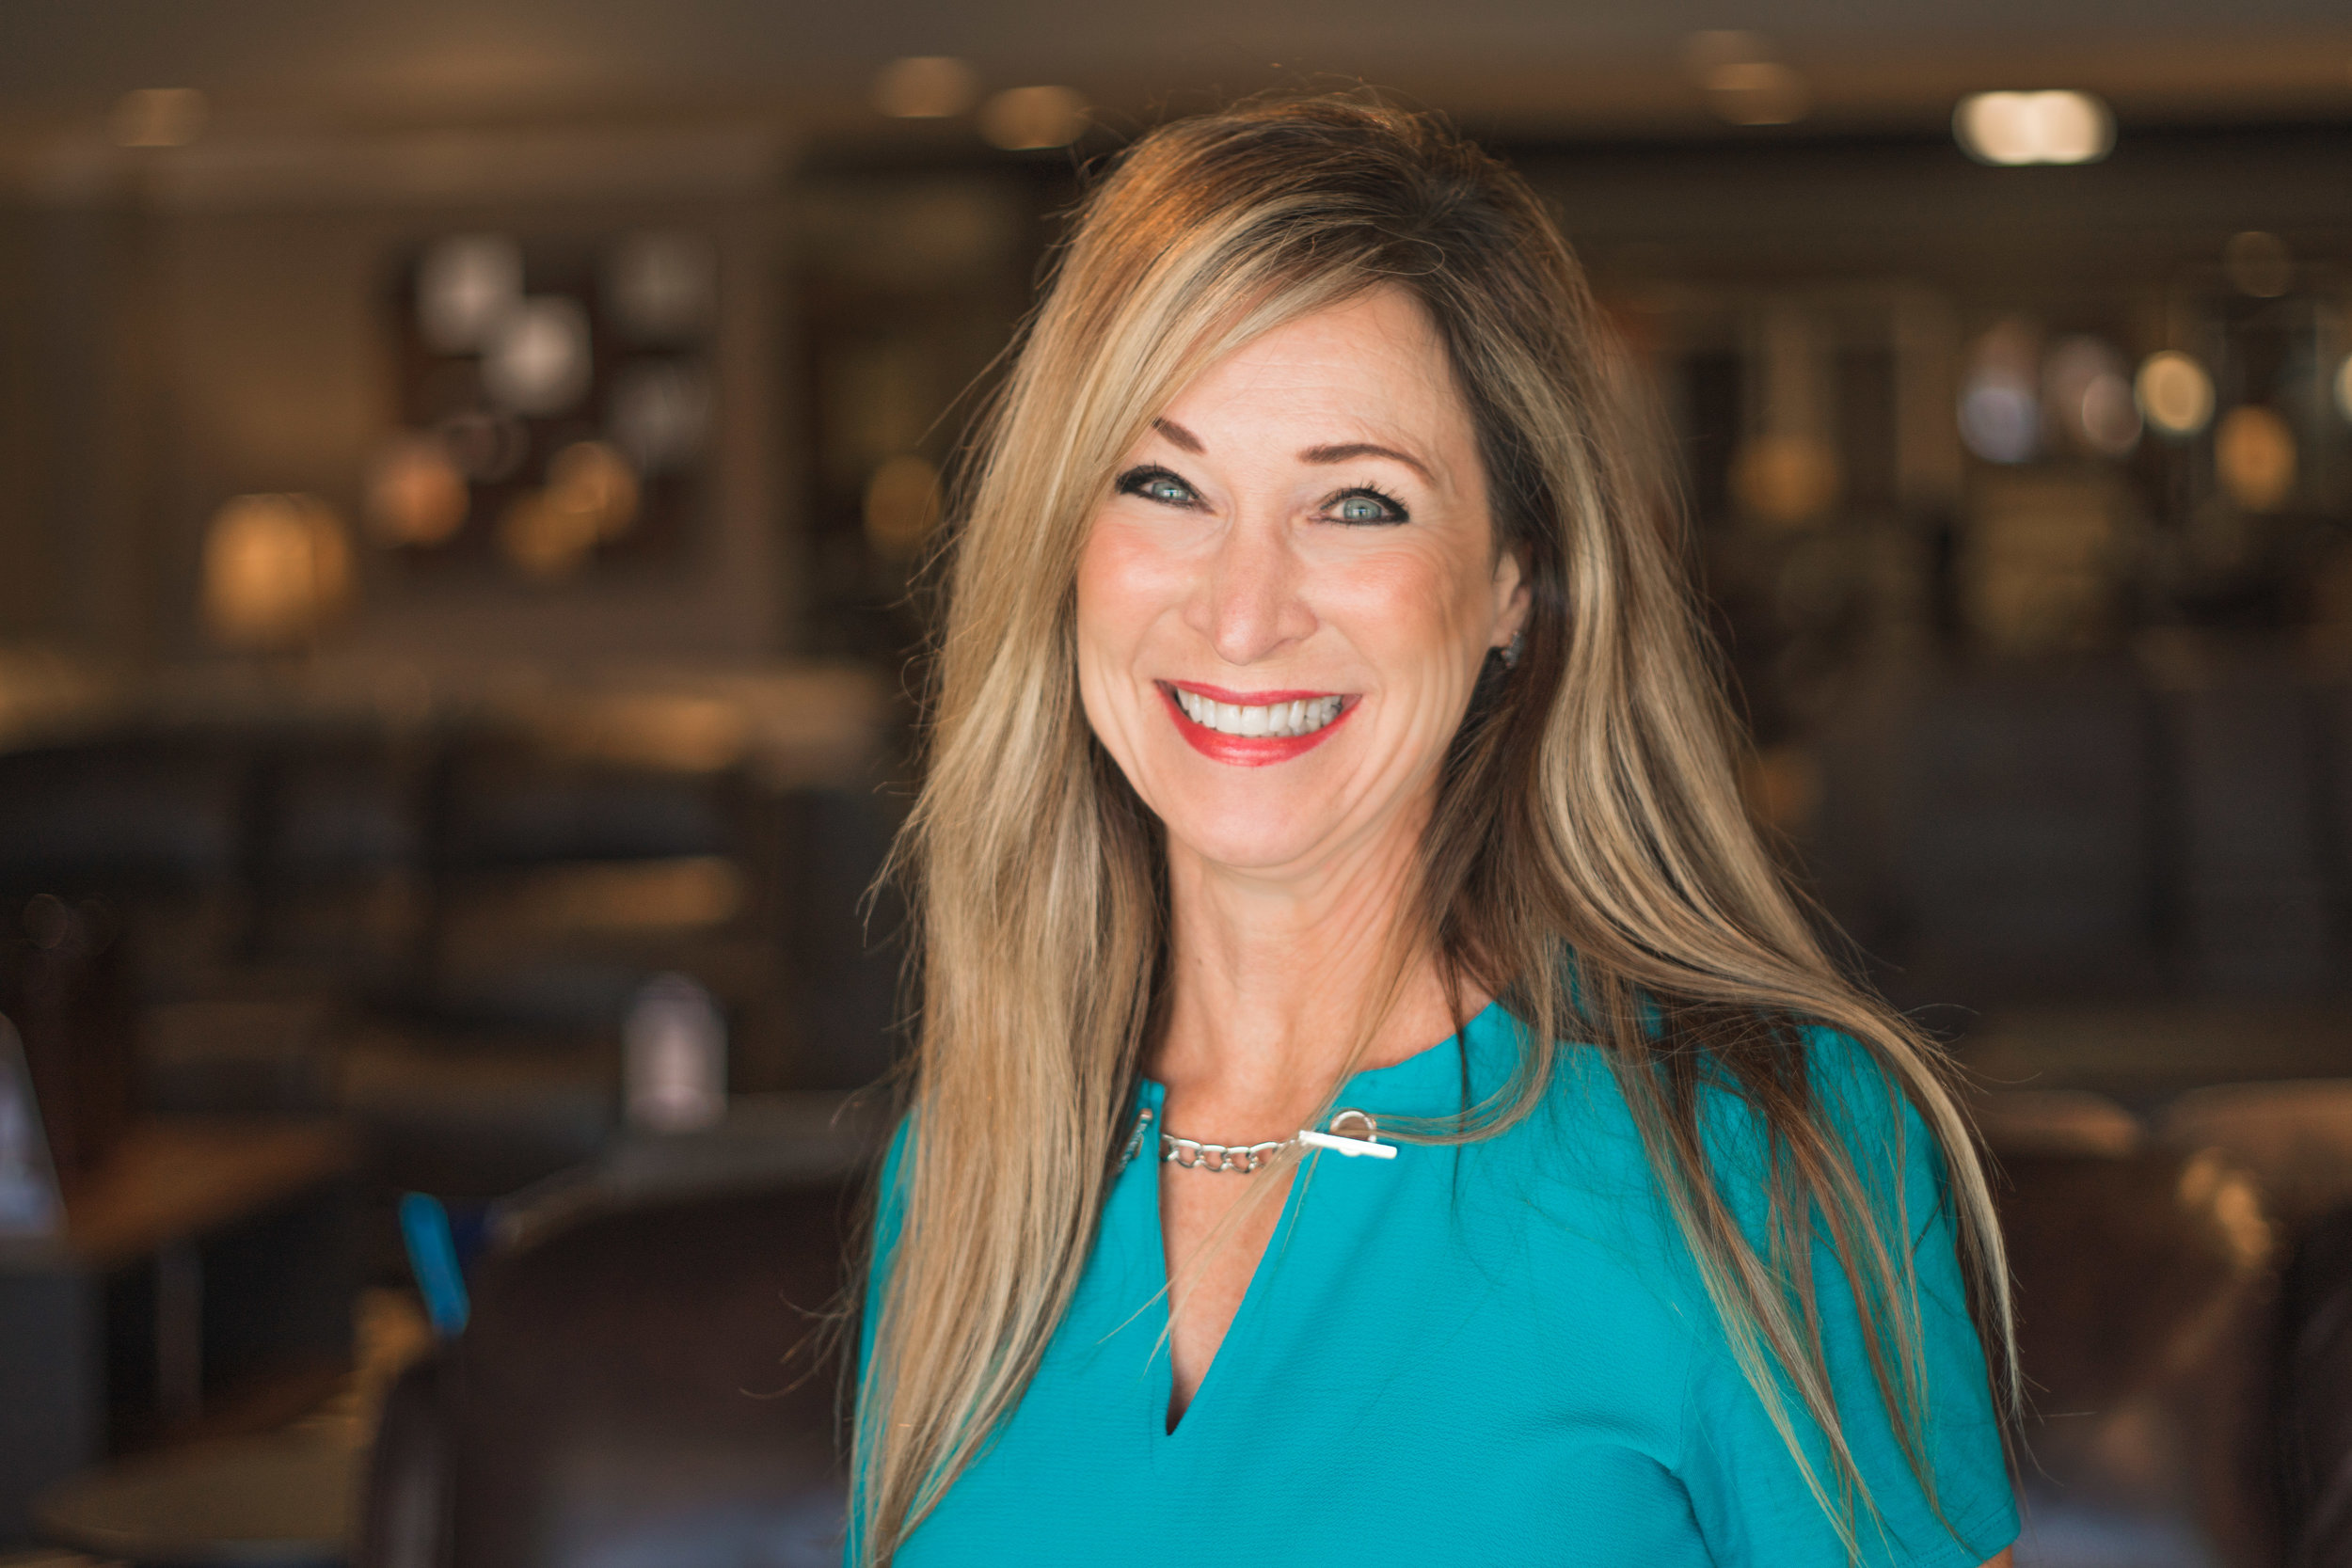 We want to welcome Pat Criswell back to the H3 team as one of our Sales/Design Consultants! Pat graduated from the University of Arkansas with a degree in Interior Design and has 20 years of professional experience to show for it. Her favorite aspect of working at H3? Getting to build relationships and work with all of her clients and customers to help them find exactly what they are looking for with their specific needs.  Pat enjoys getting running with her three dogs, spending time with her family and looks forward to helping you make your house a home at H3 Home + Decor!